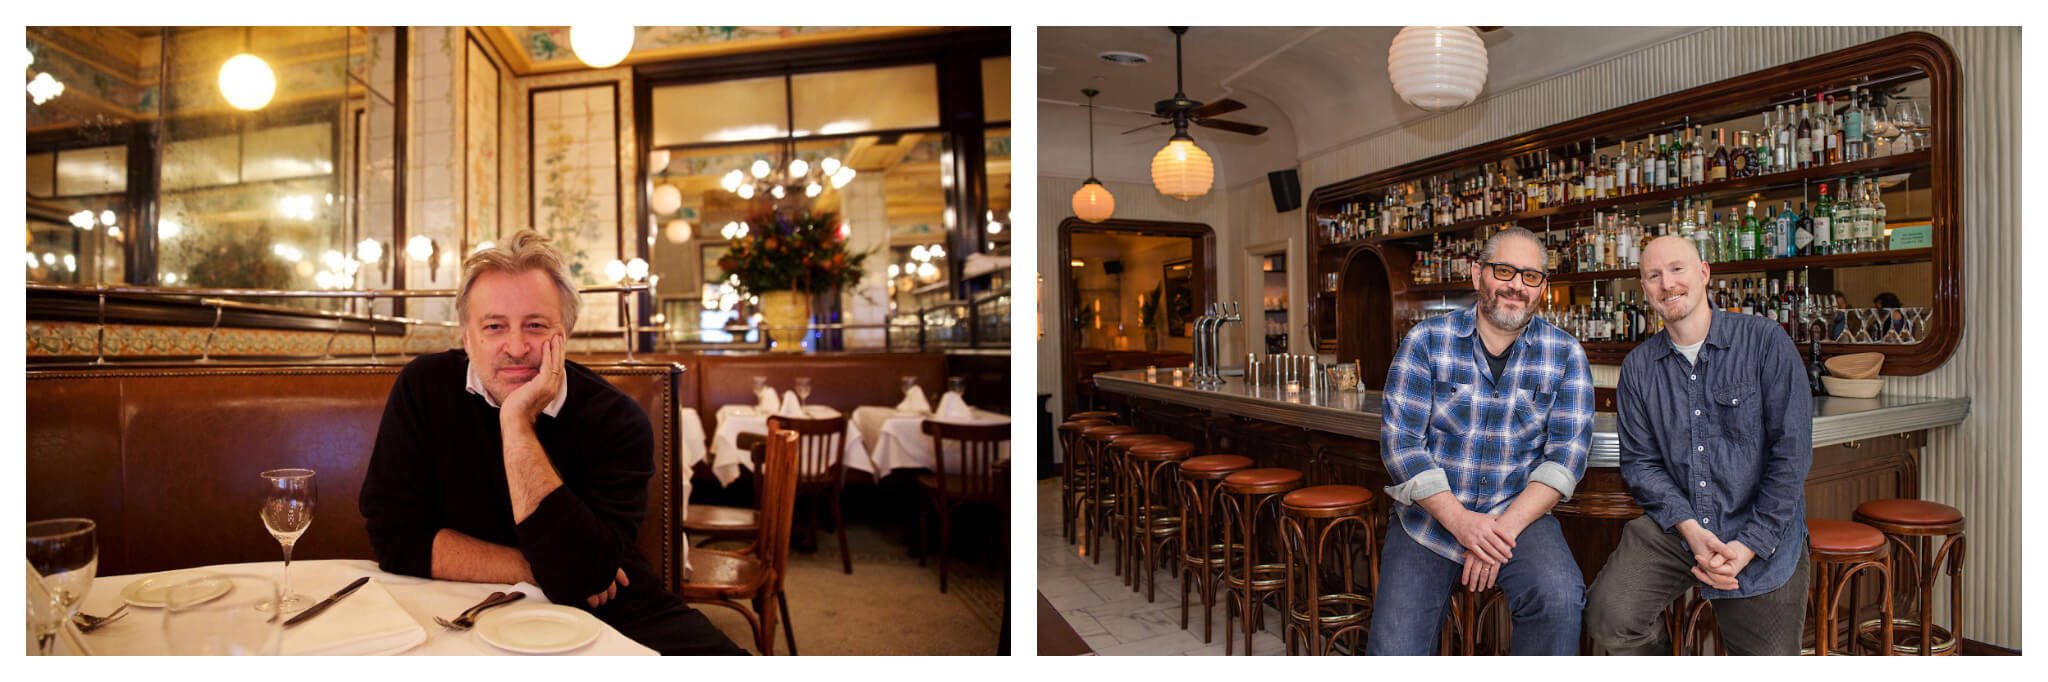 Left: Keith McNally, one of the authors of the Balthazar cookbook, seated at a booth in a restaurant, and looks straight into camera with his head resting on his hand, Right: Riad Nasr and Lee Hanson, co-authors of the Balthazar Cookbook, sit next to each other on barstools in a restaurant and smile at the camera